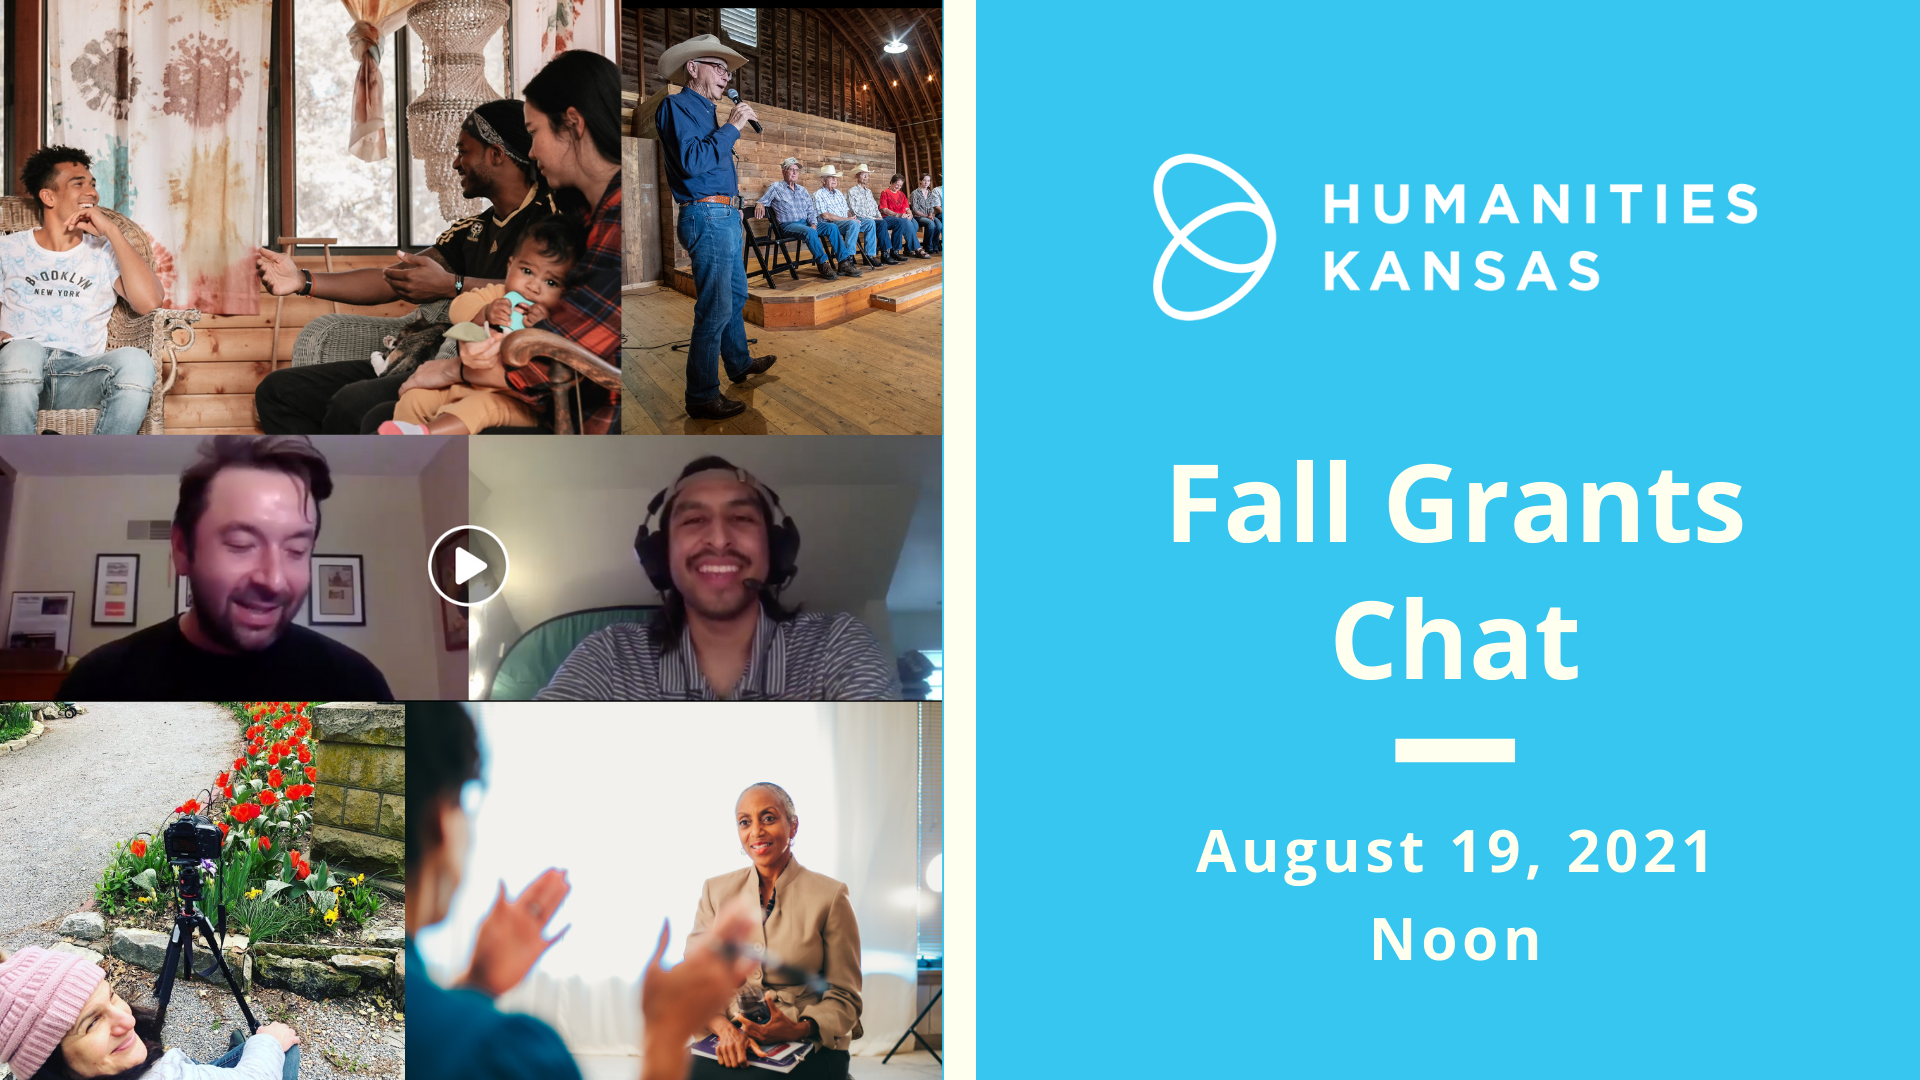 Fall Grants Chat Event Image